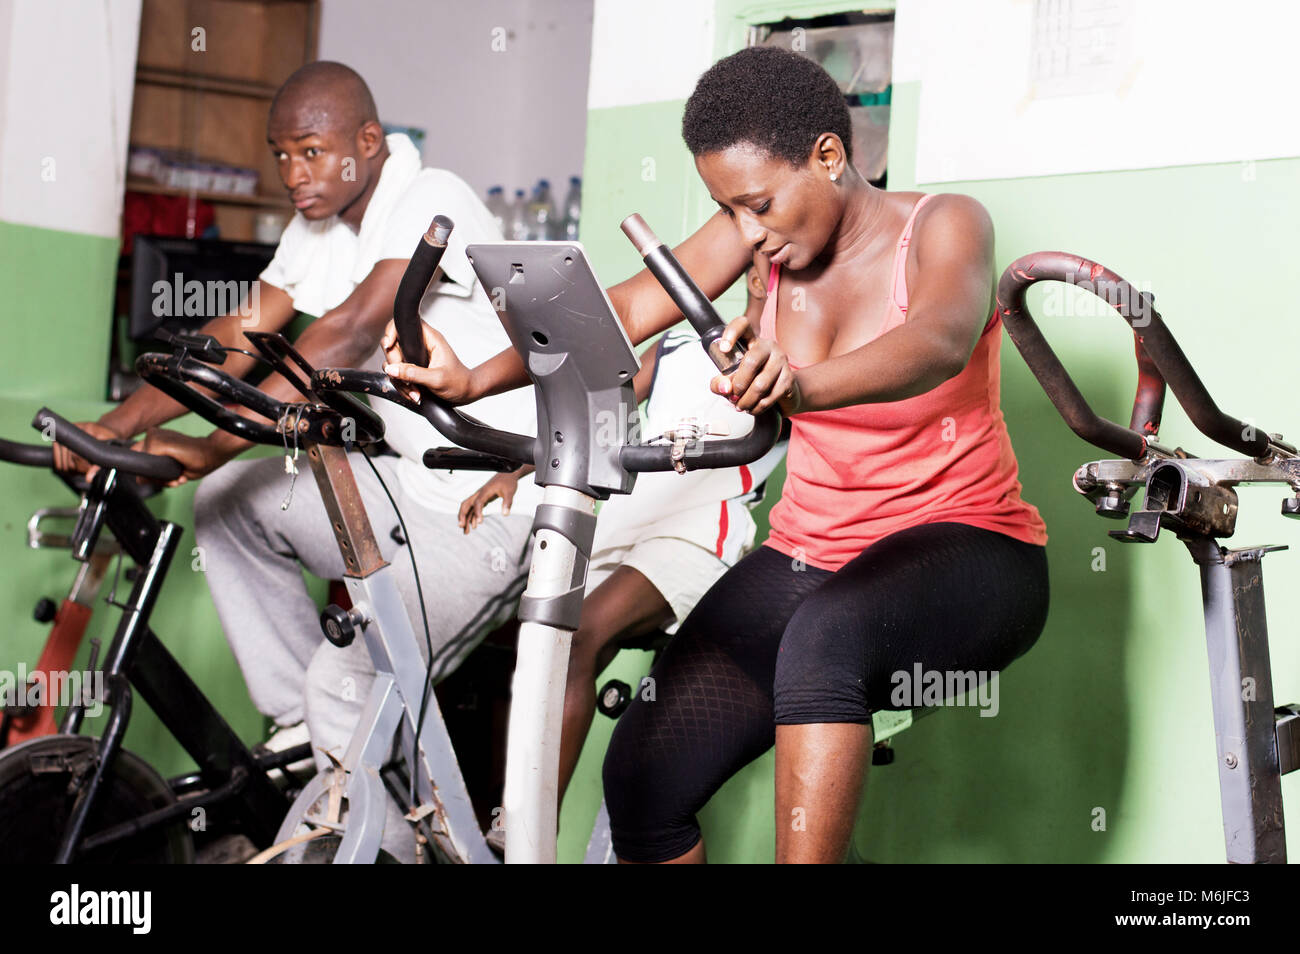 Young people pedaling gymnasium bikes indoors. - Stock Image